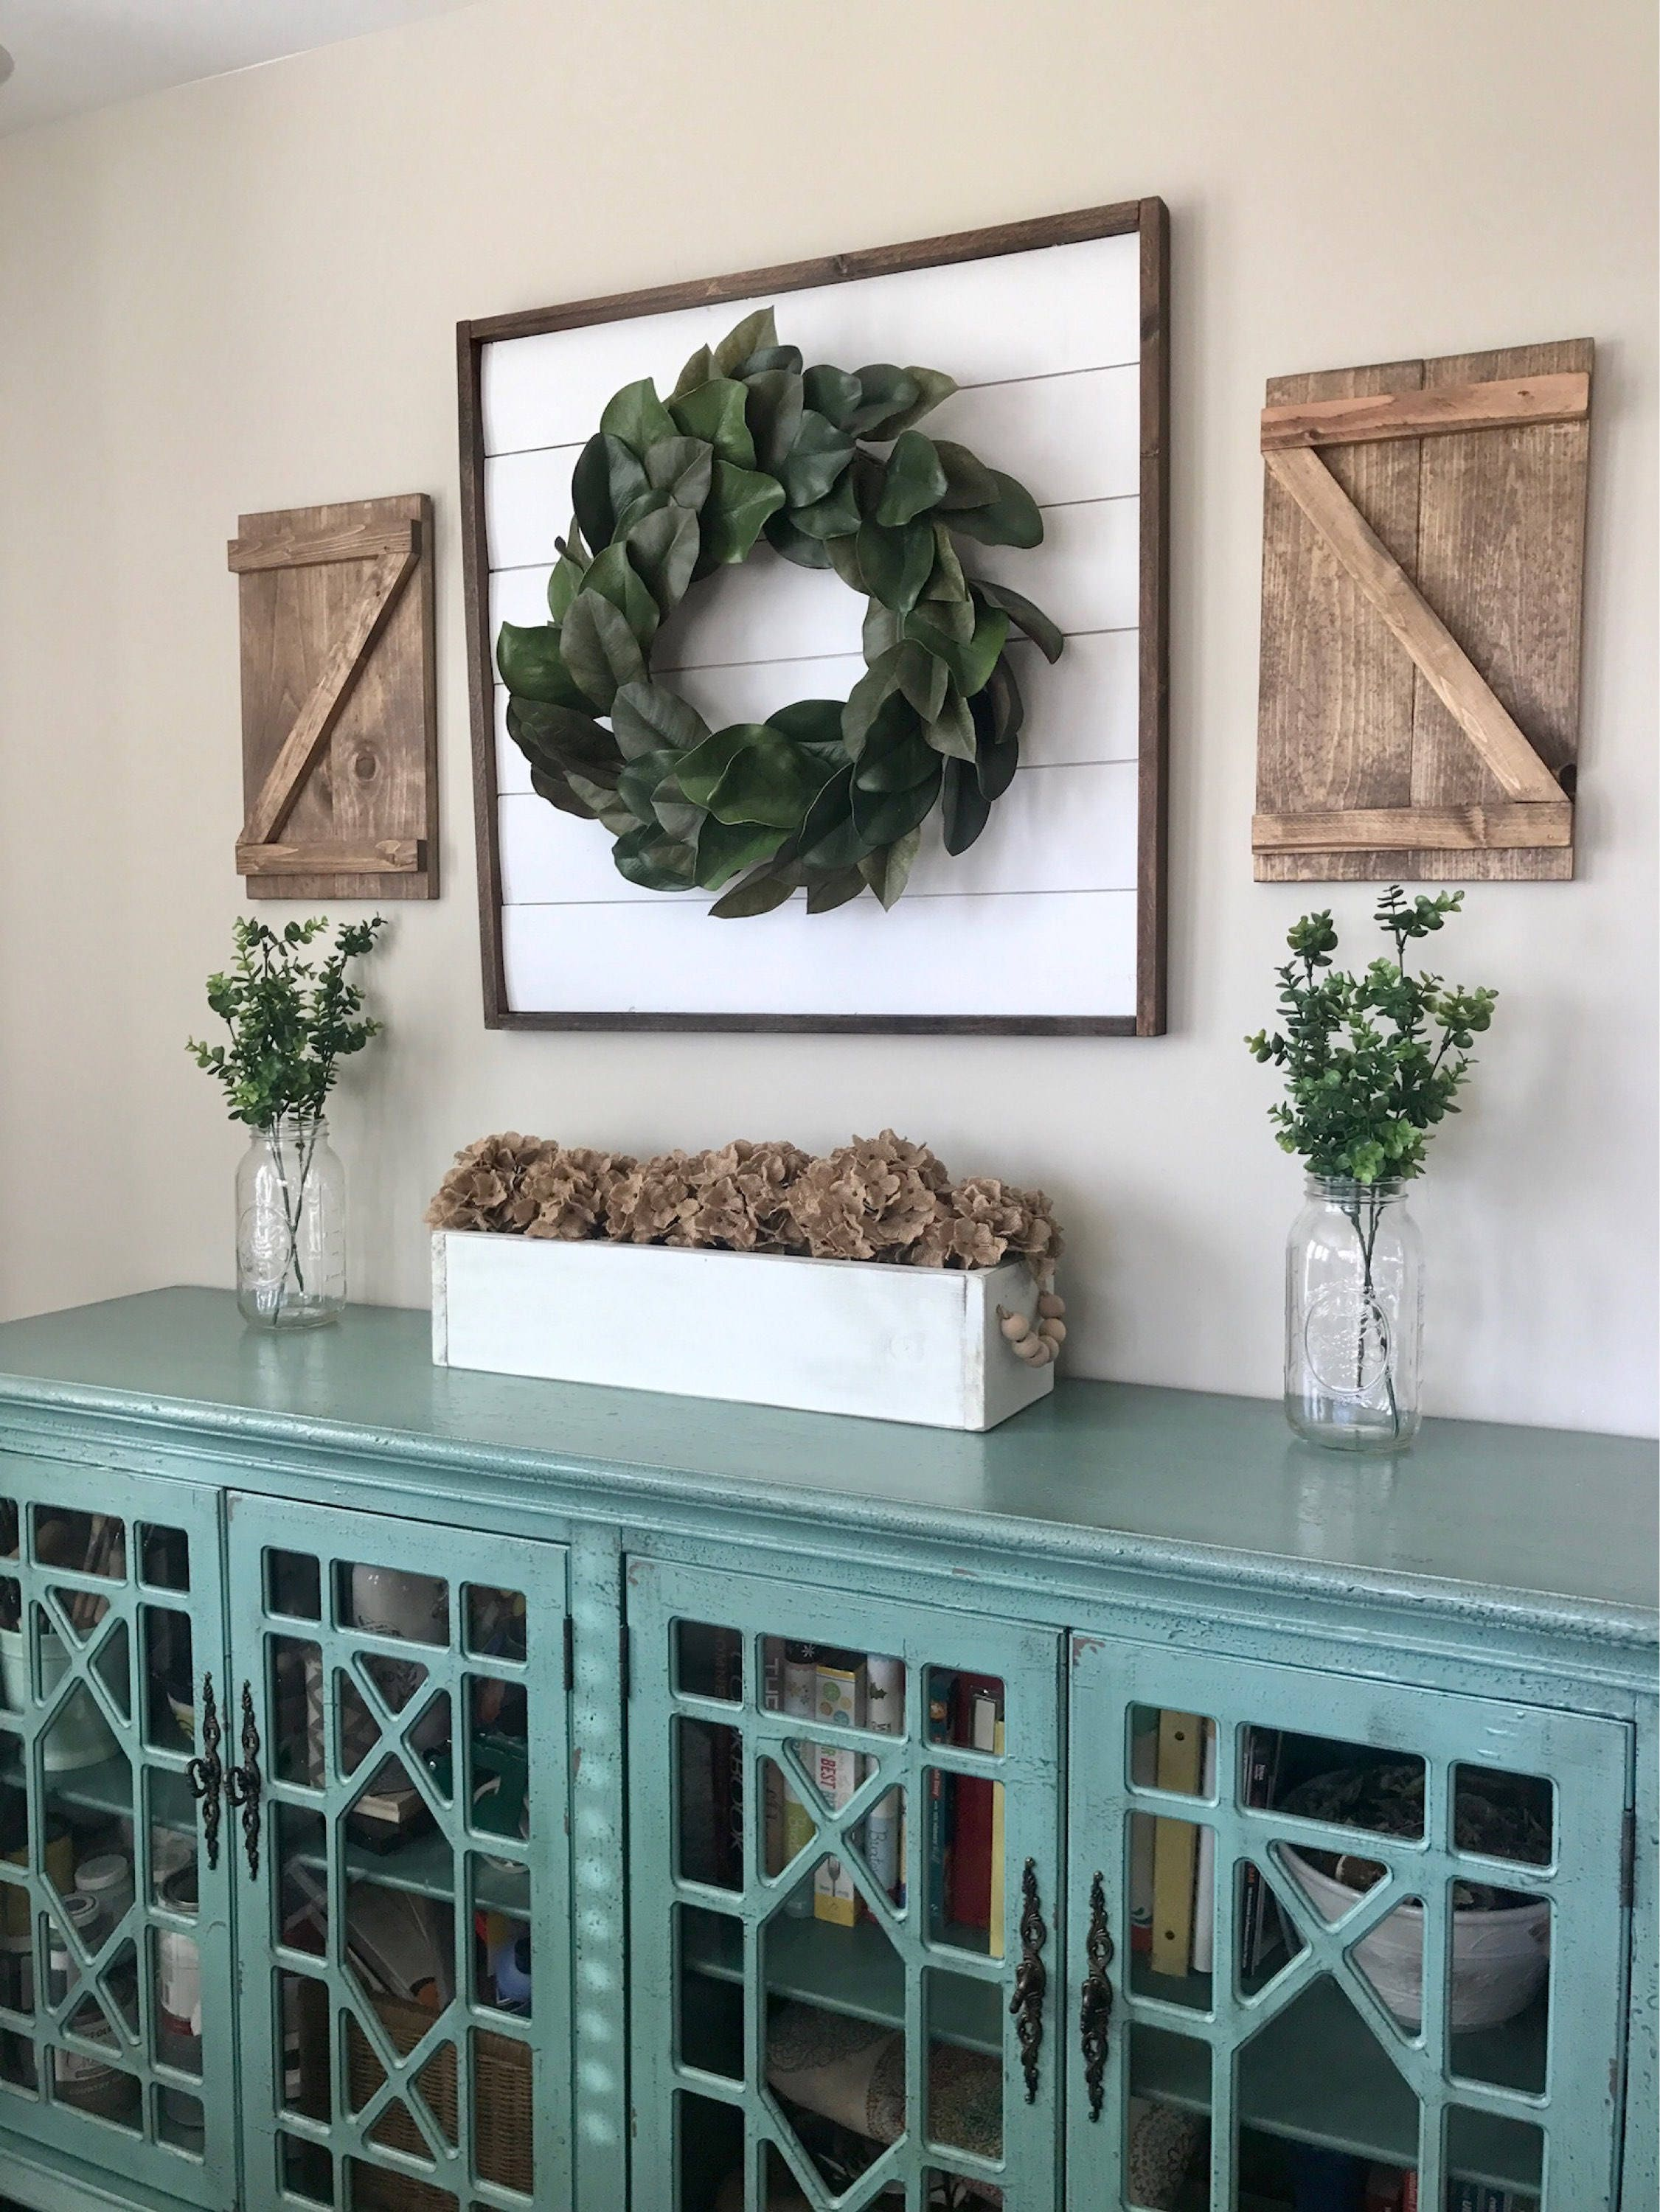 Decorative Metal Shutters For Living Room Interior Houston Tx: Pair Of Small Decorative Z Wood Shutters. Rustic Shutters